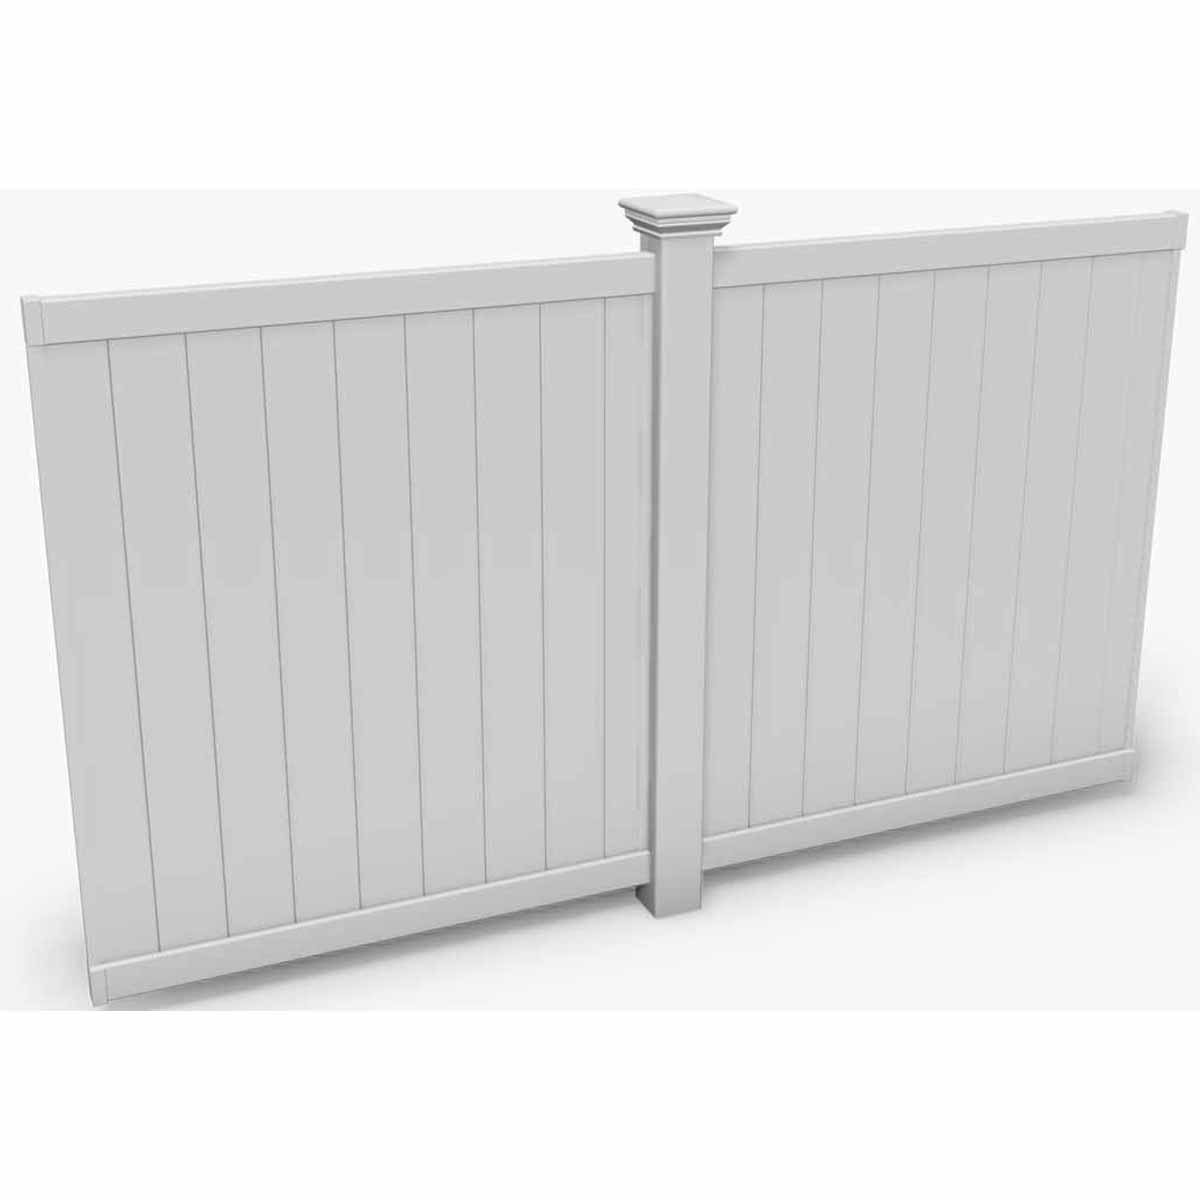 New England Arbors Flat Privacy Wall, 10', White